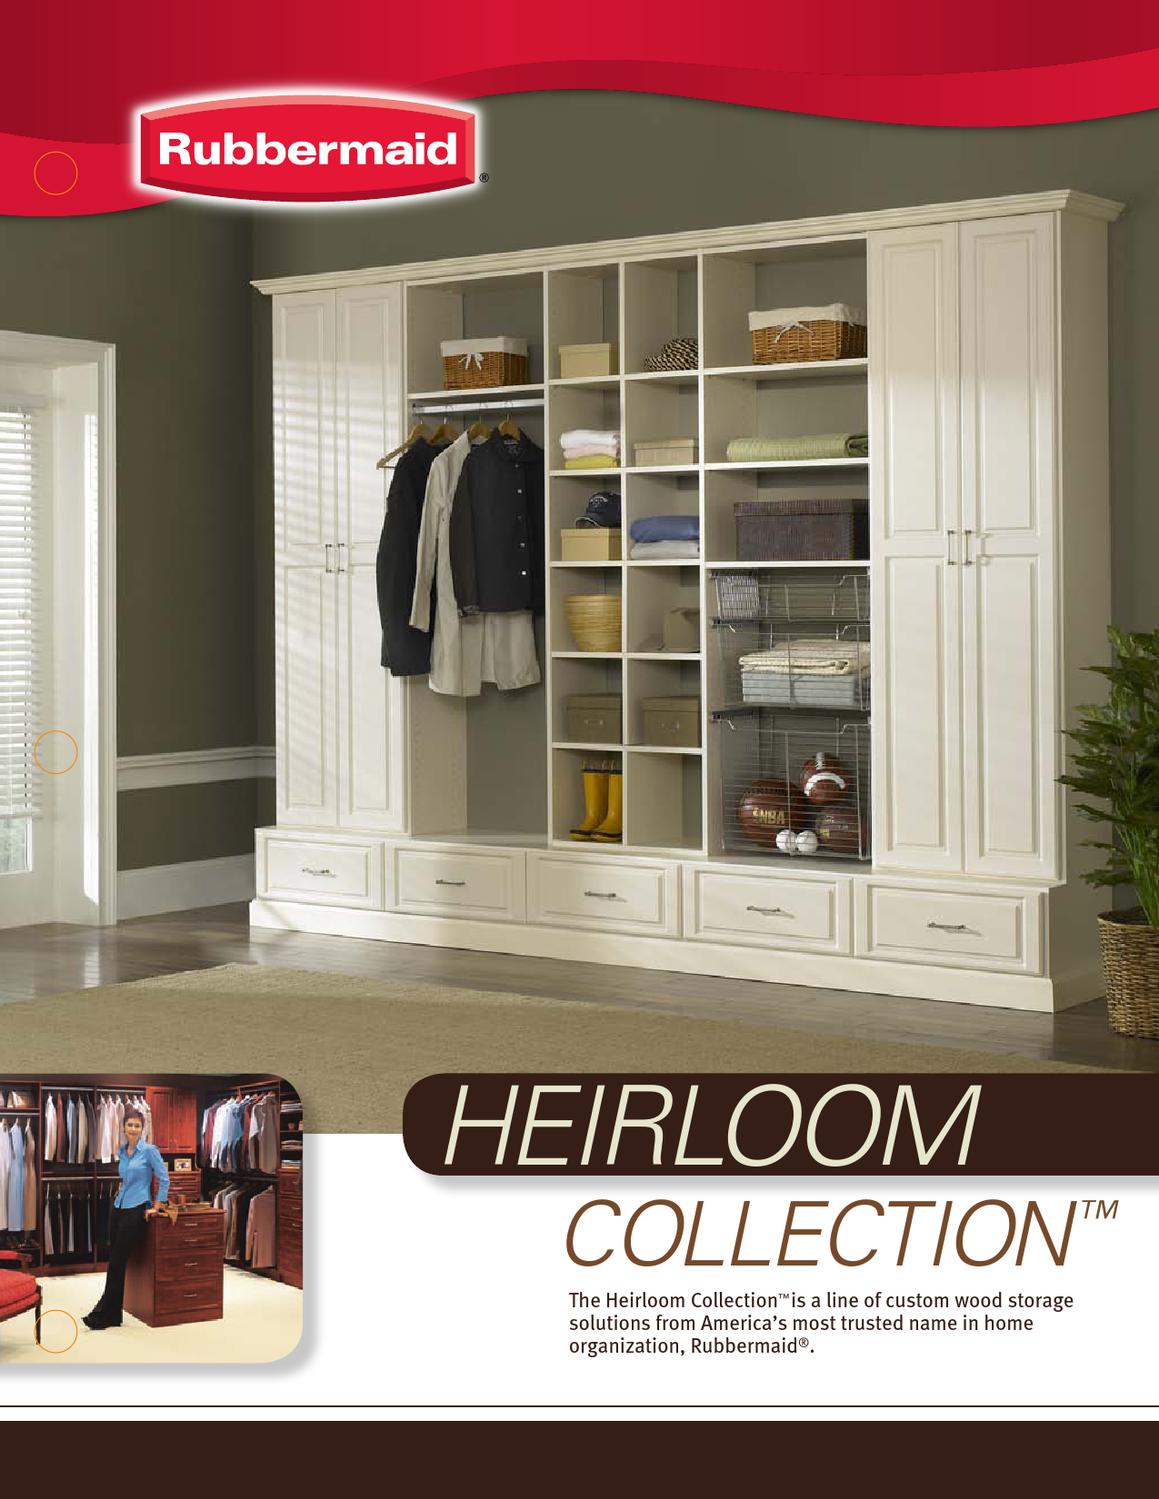 Rubbermaid Heirloom Collection By Showroom Partners Issuu